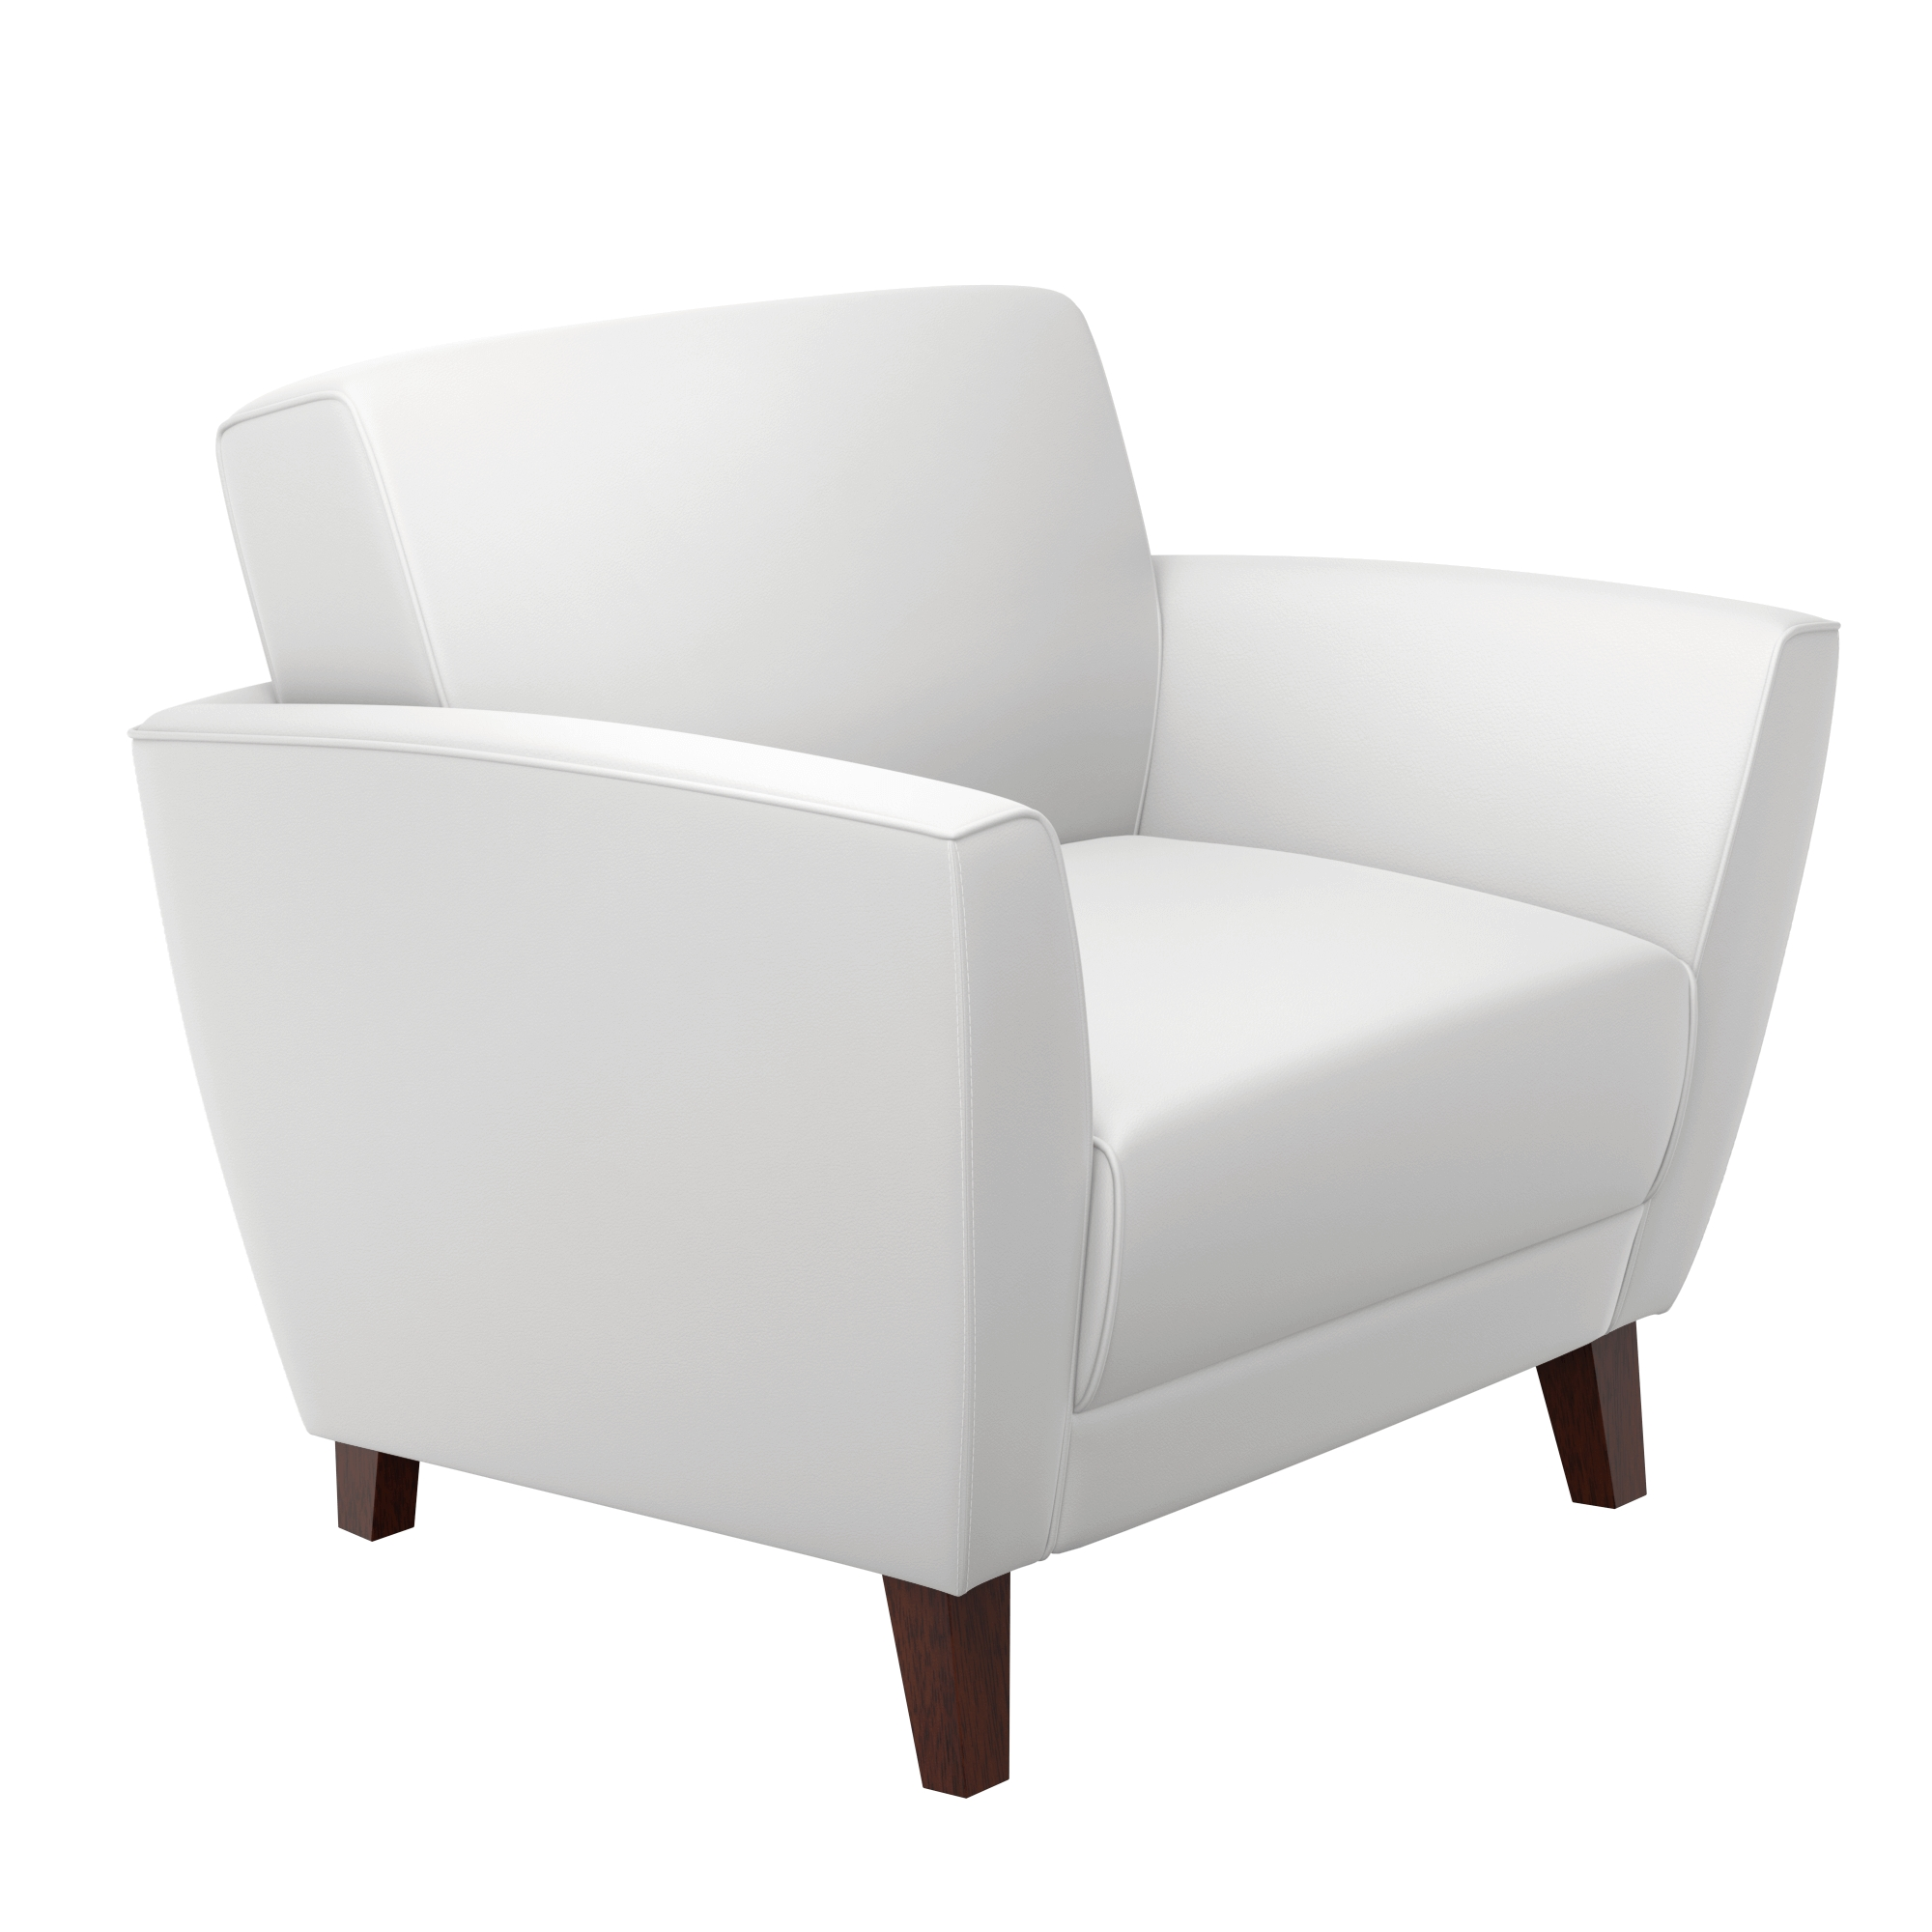 Guest chairs CUB CLL11750WHITE MOC